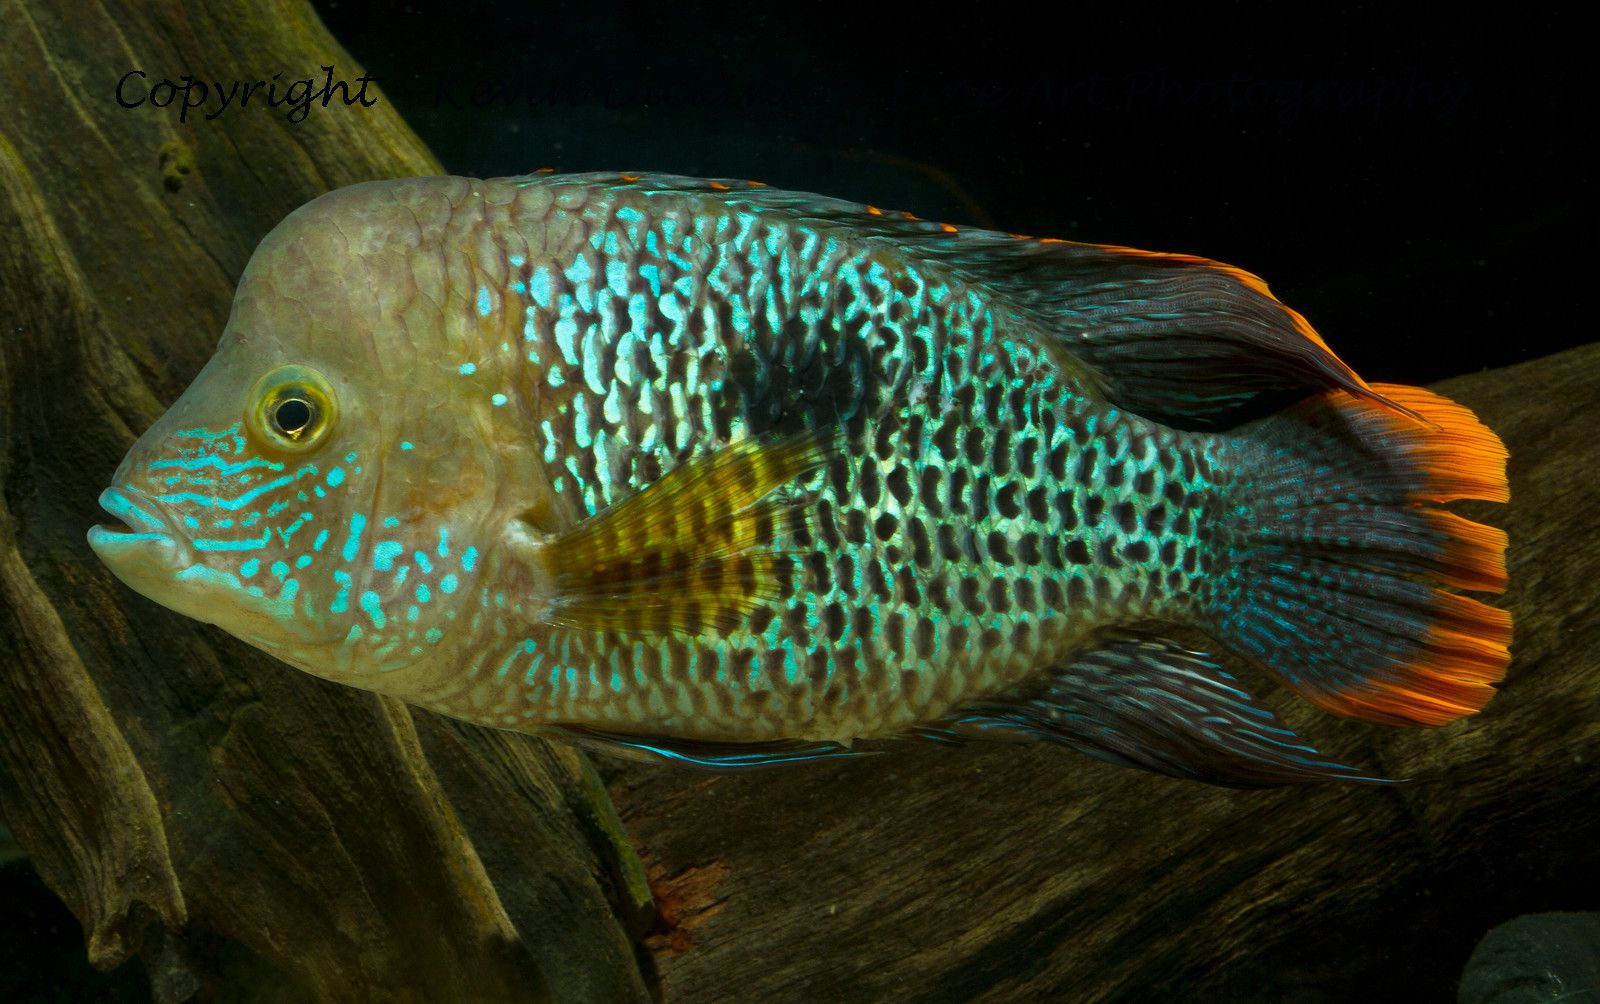 New world cichlids of the americas kevin dickinson fine for Most aggressive freshwater fish